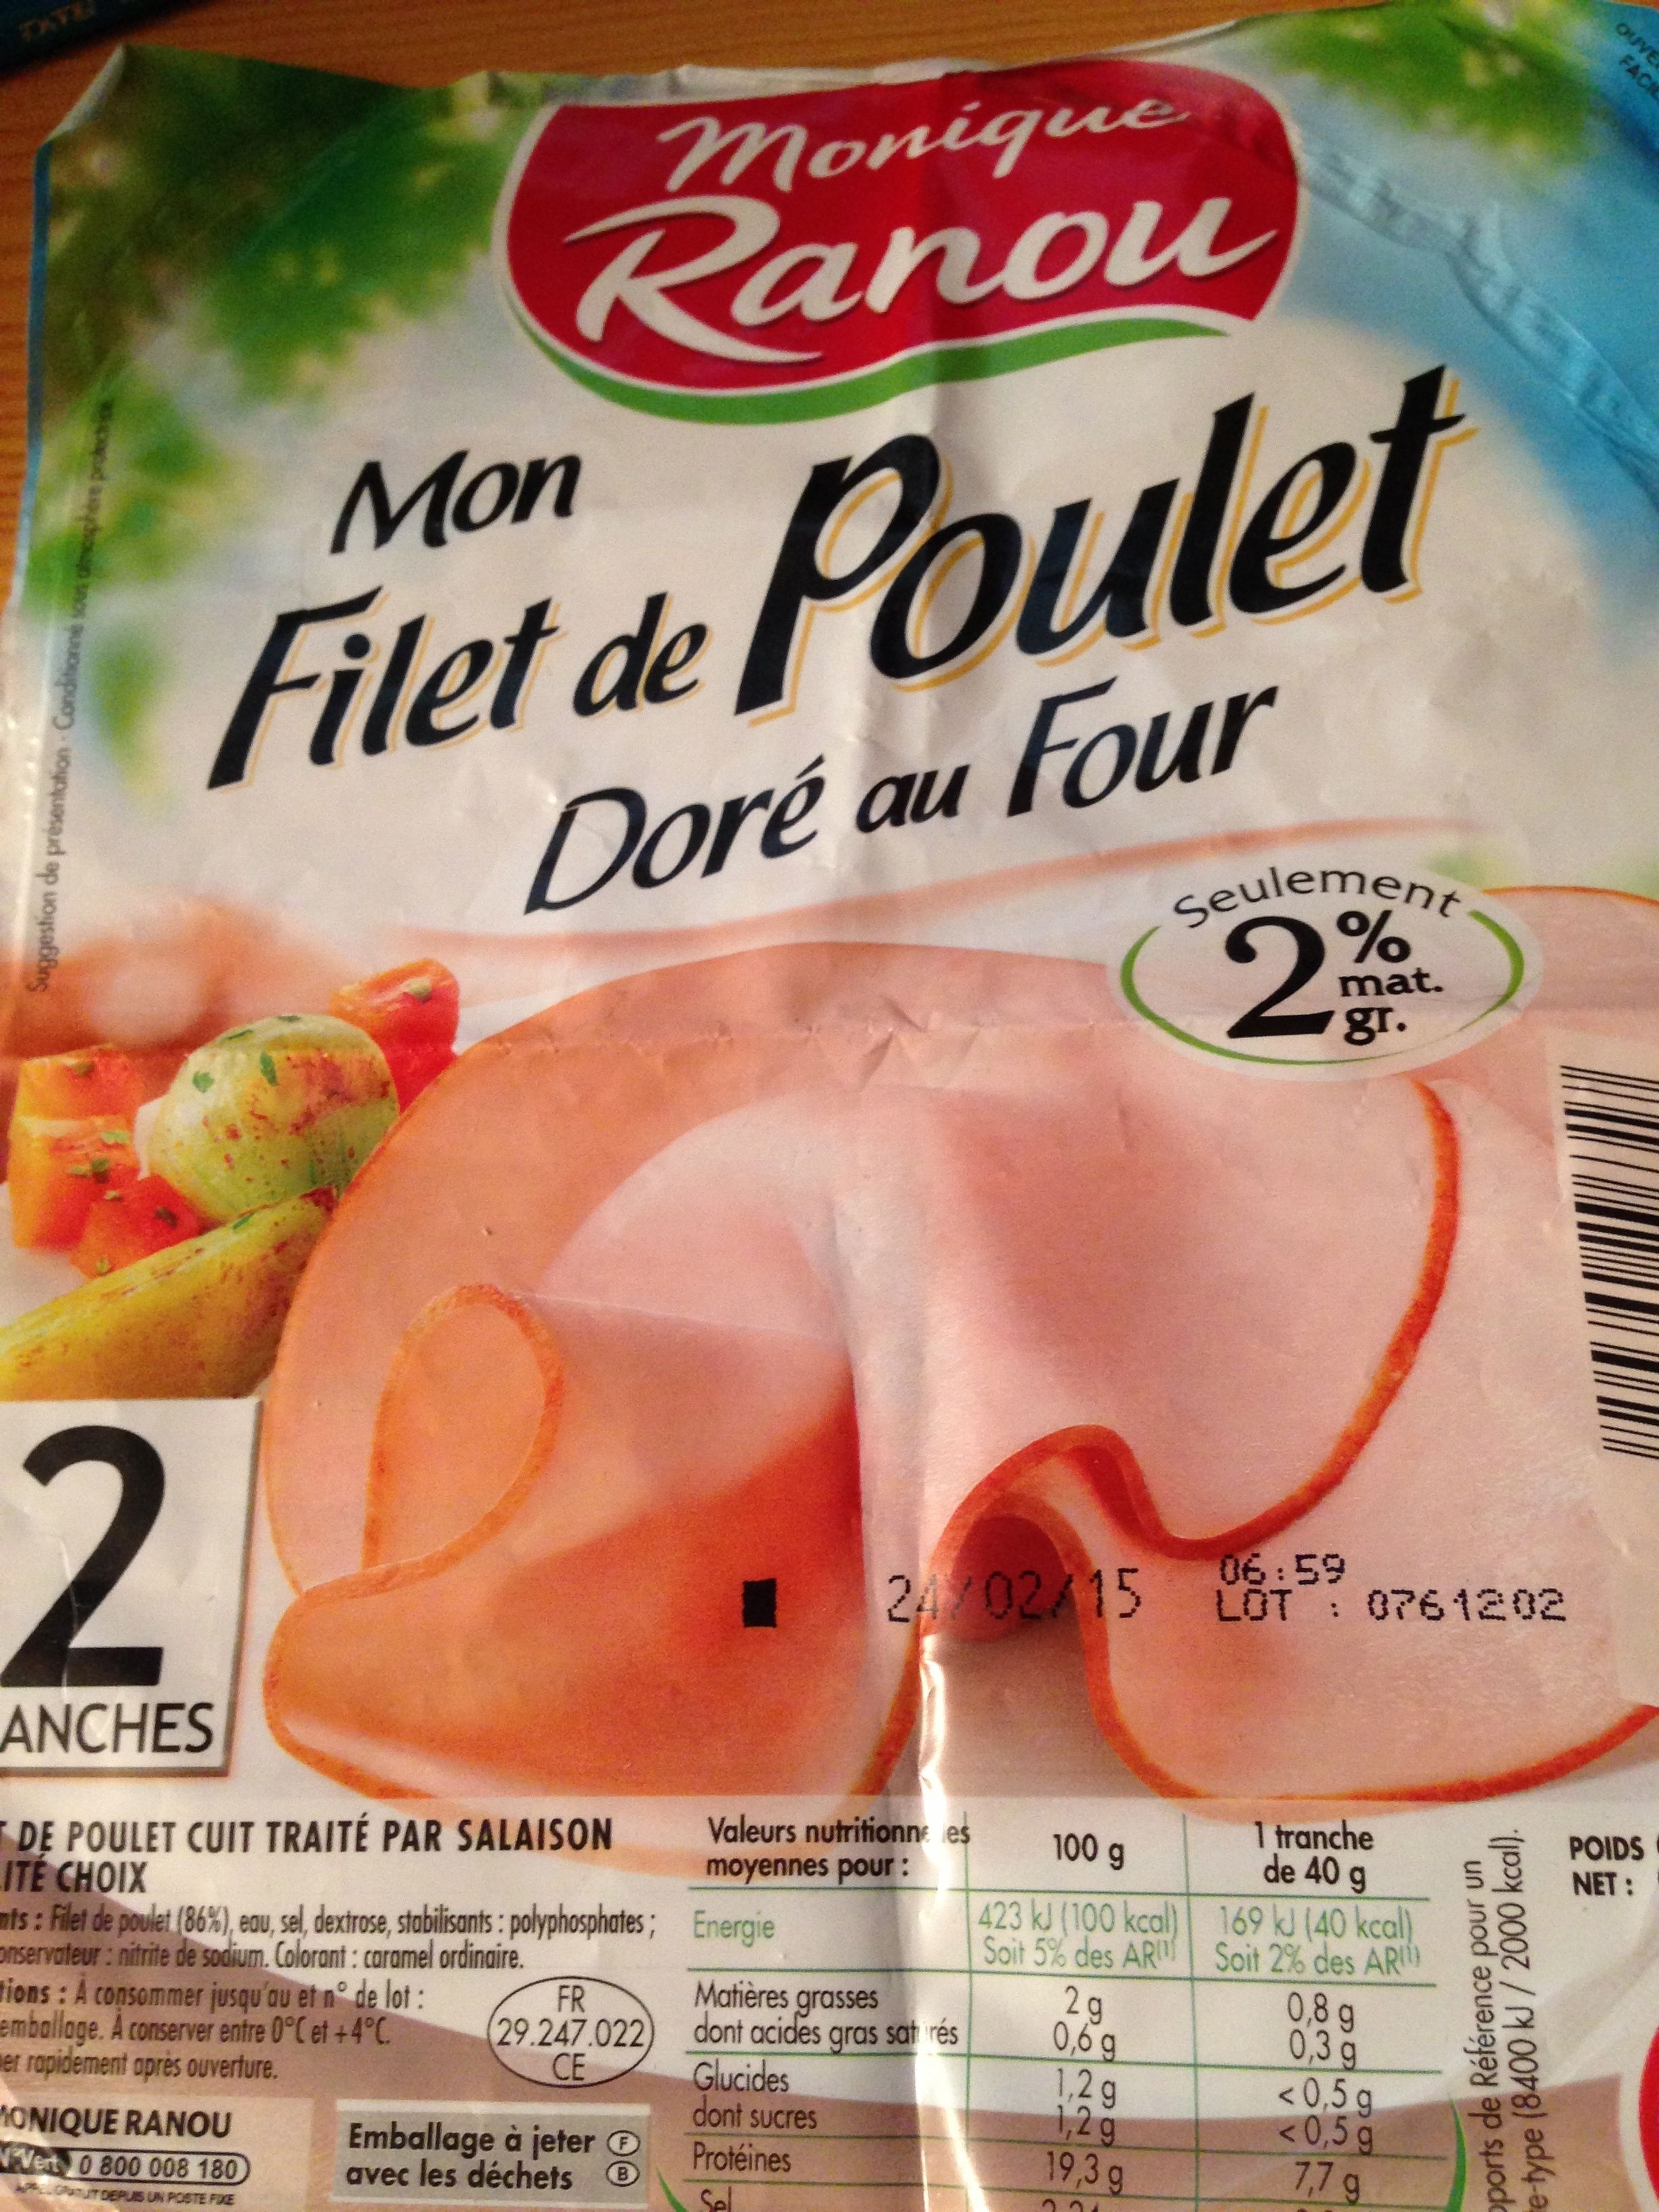 Mon Filet de Poulet - 2 Tranches - Doré au Four - Product - fr